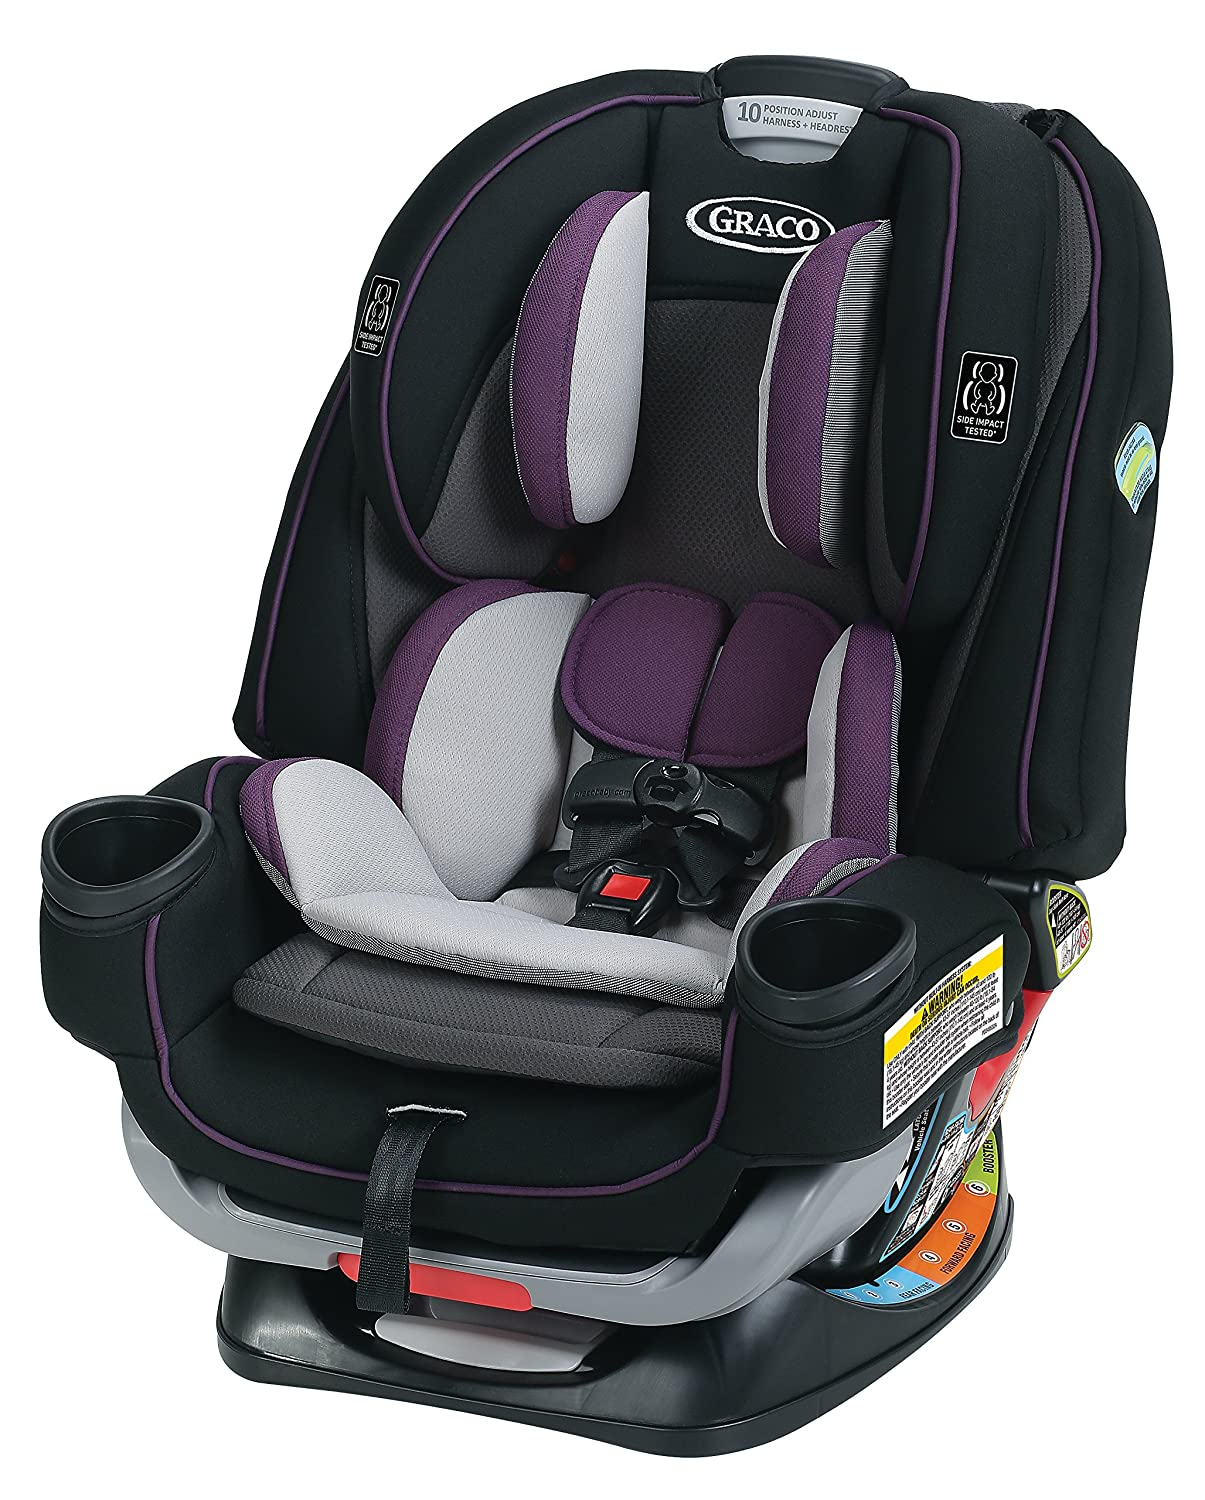 Gracobaby 4Ever Extend2Fit 4-in-1 Convertible Car Seat, Jodie